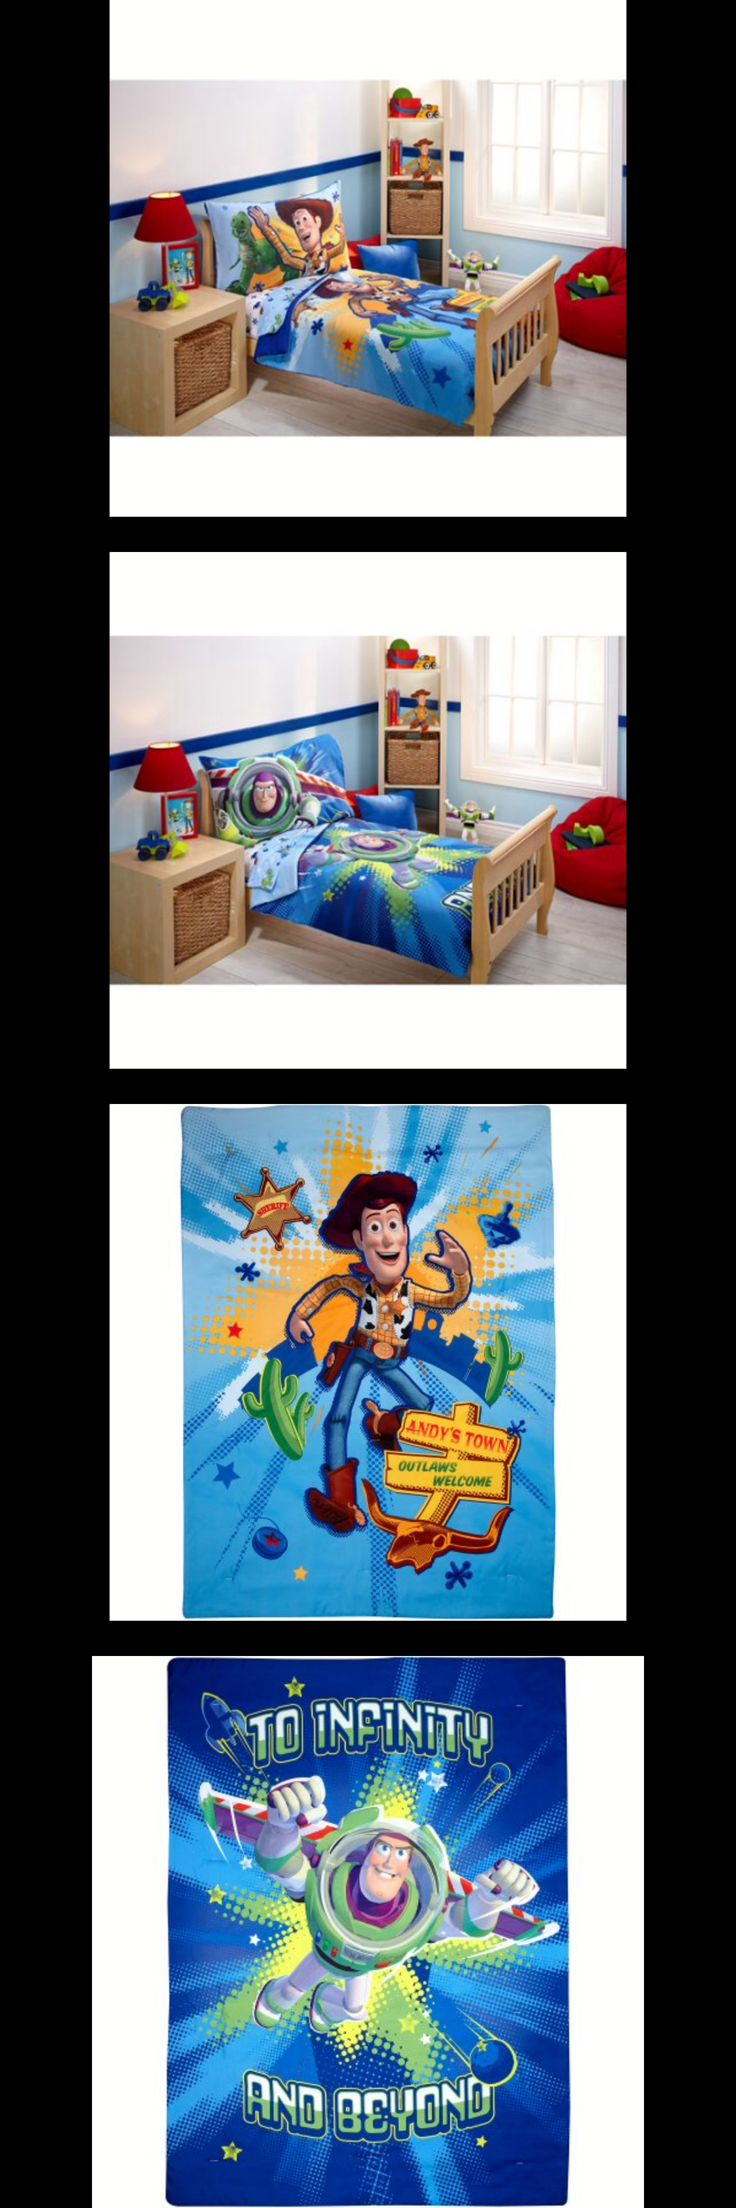 Jessie from toy story bedding - Bedding Sets 66731 Toy Story 4 Piece Reversible Toddler Bed Set Bedspread Sheets Pillowcase New